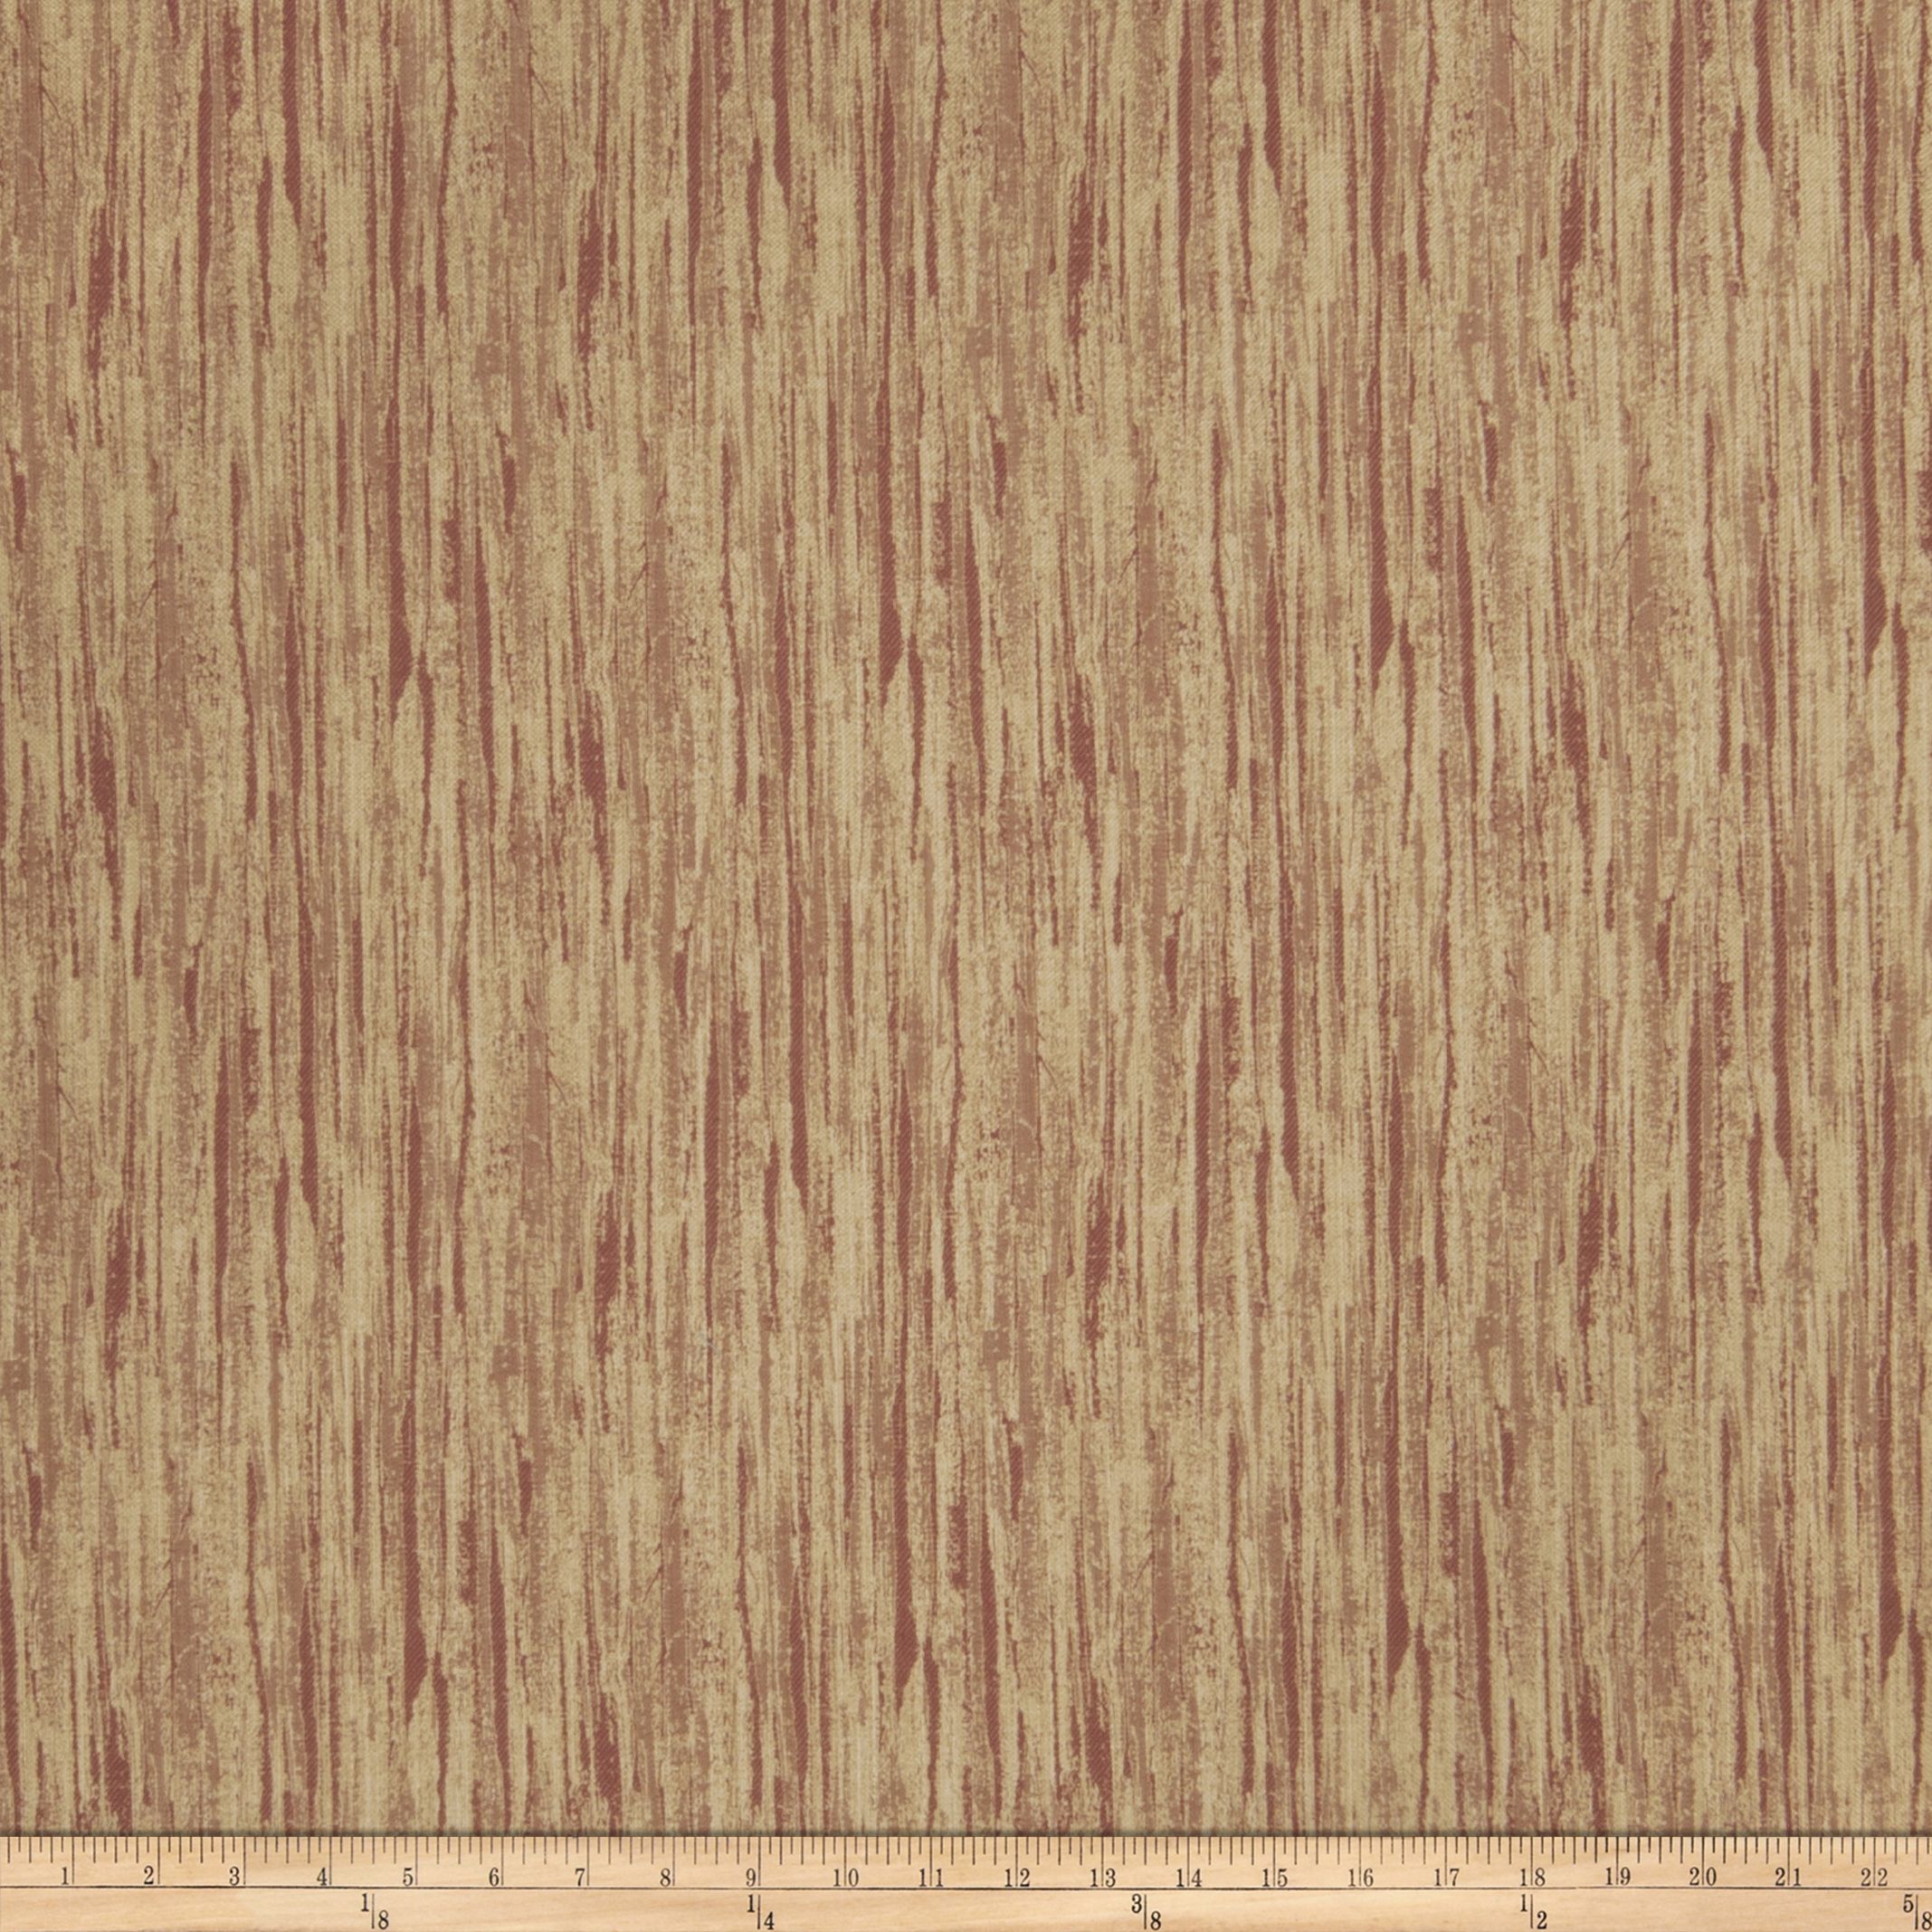 Trend 2876 Autumn Fabric by Fabricut in USA